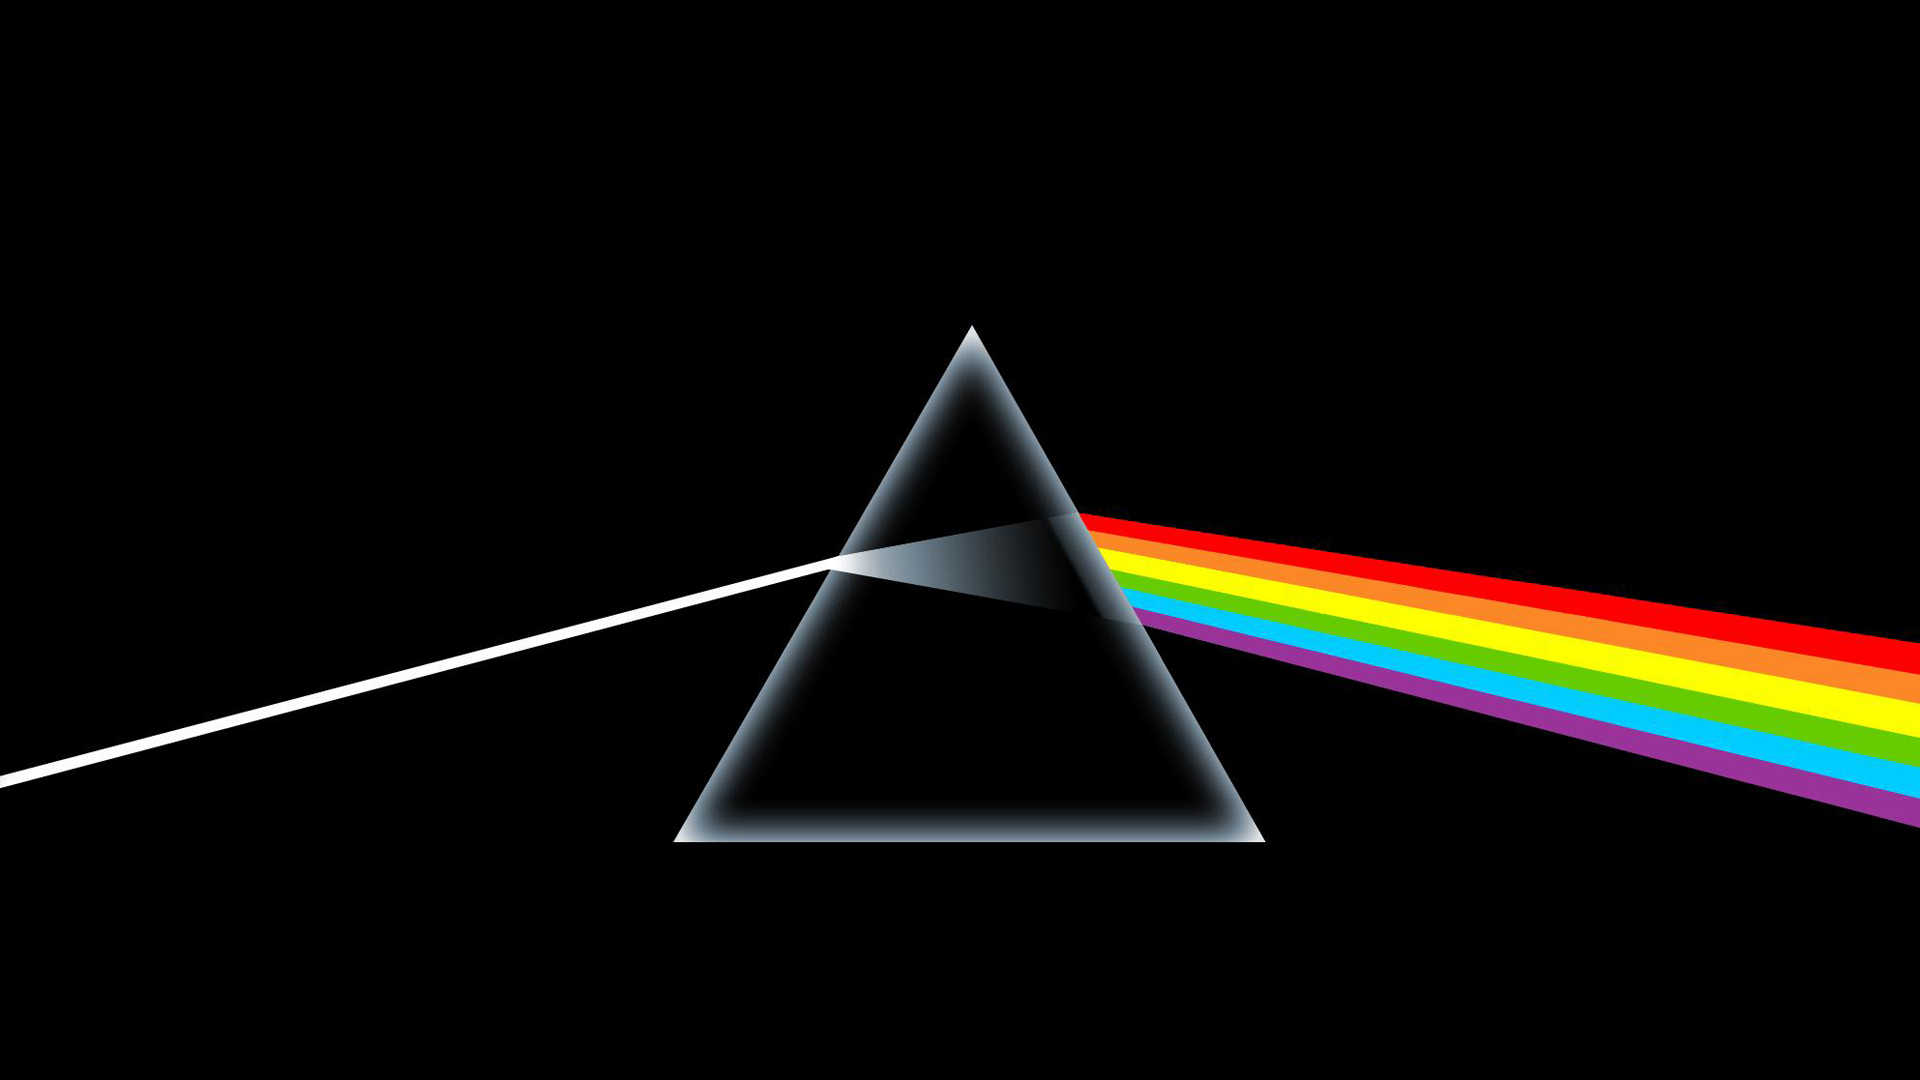 Pink Floyd Meddle Cover Art Wallpaper Original Dark Side Of The Moon Full HD